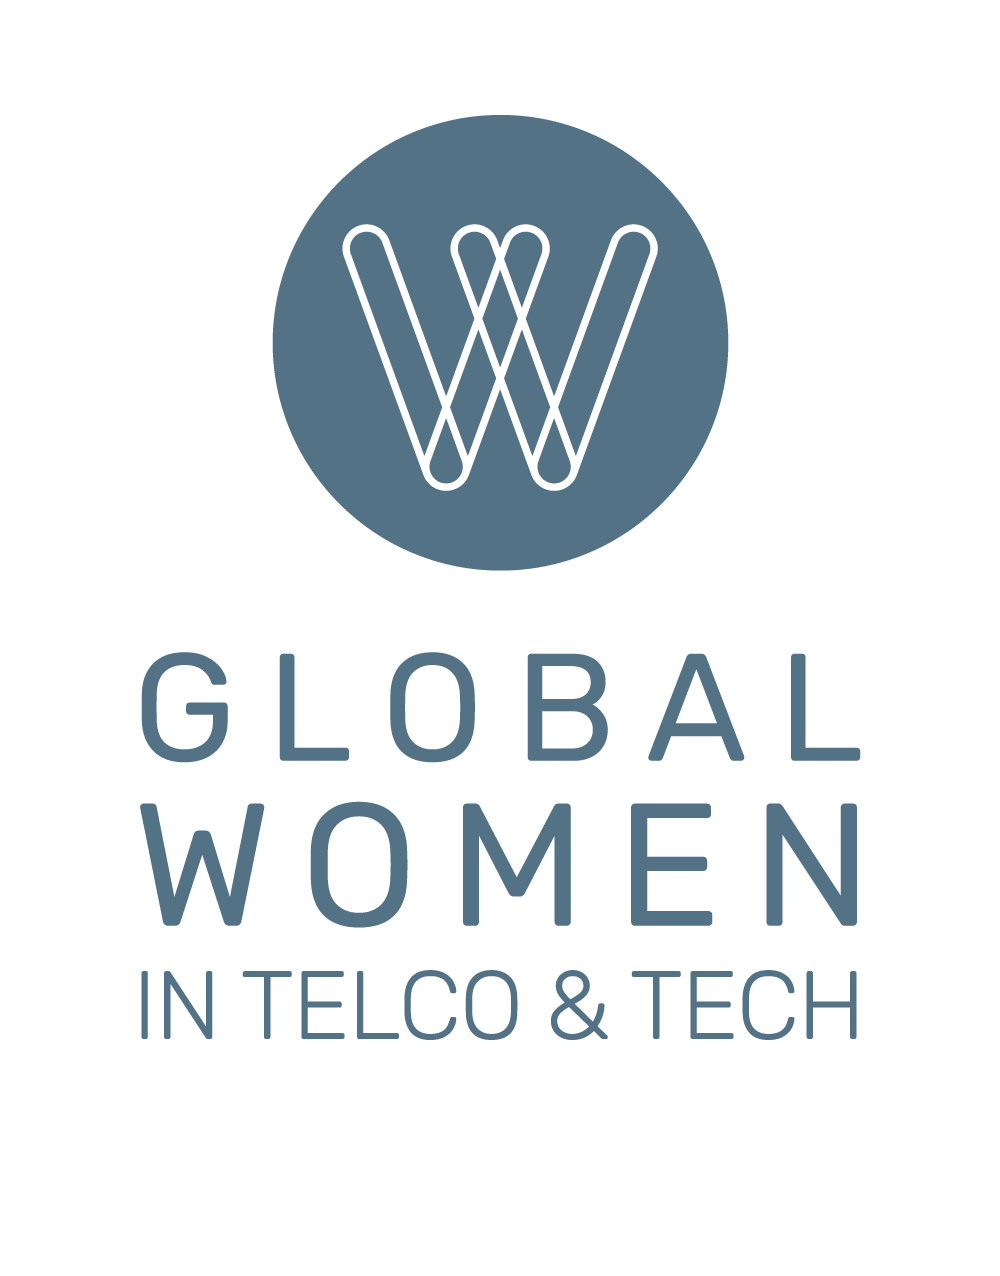 WOMEN IN TELCO